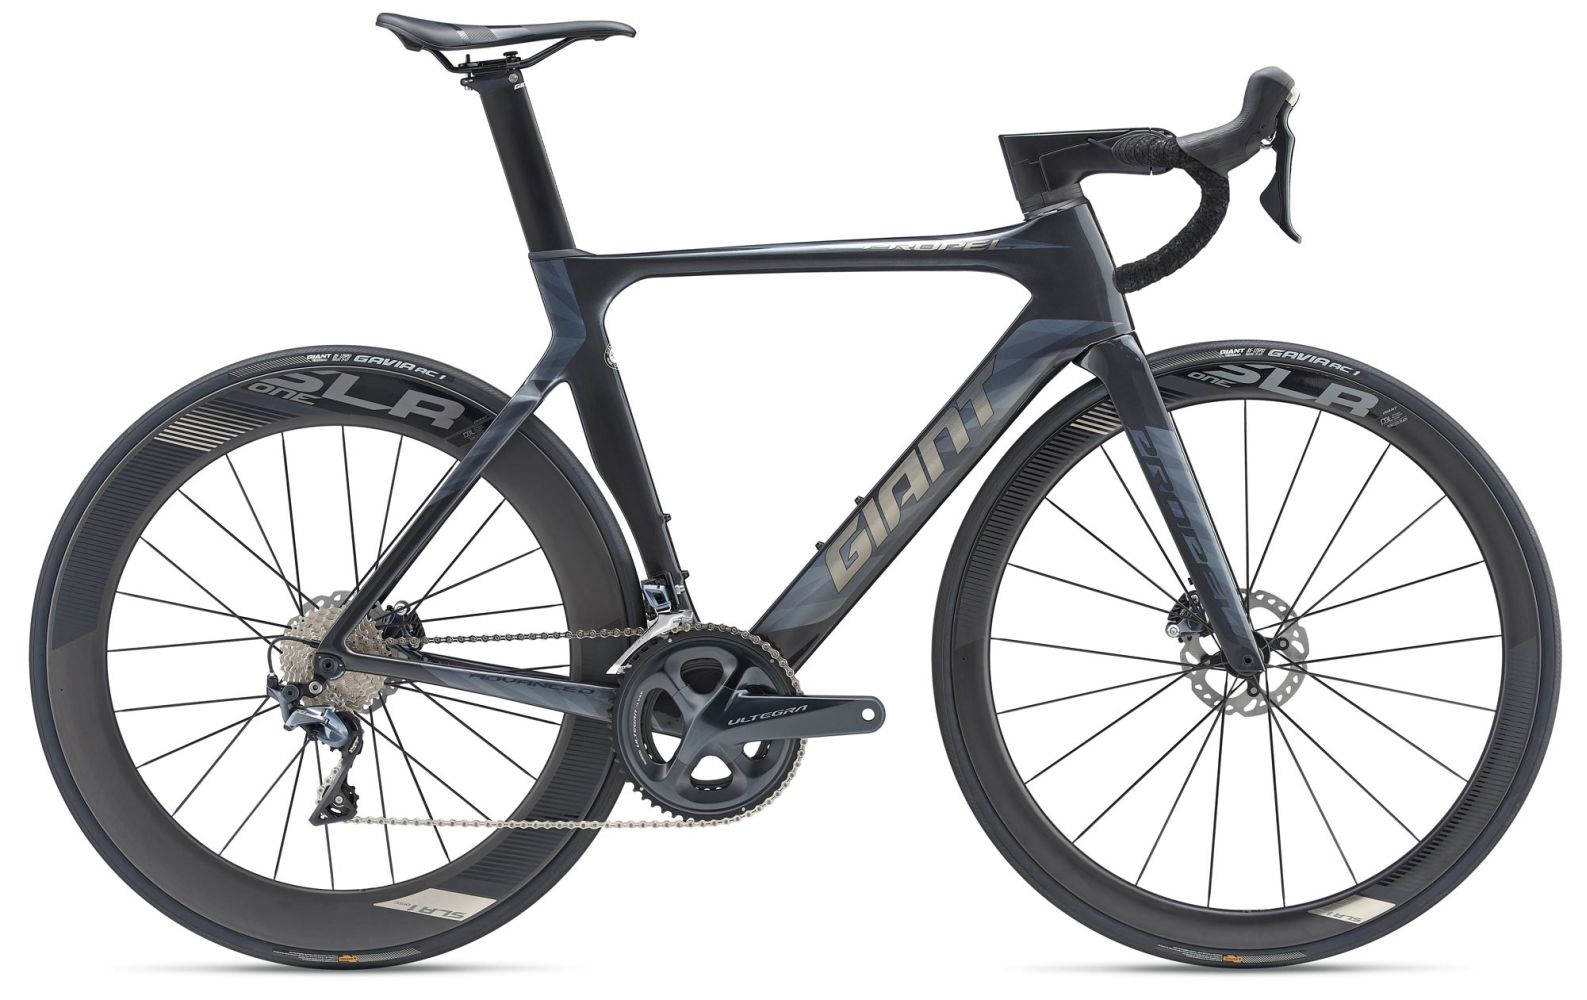 The 2019 propel advanced 1 disc in gun metal black charcoal and chrome availability varies by country